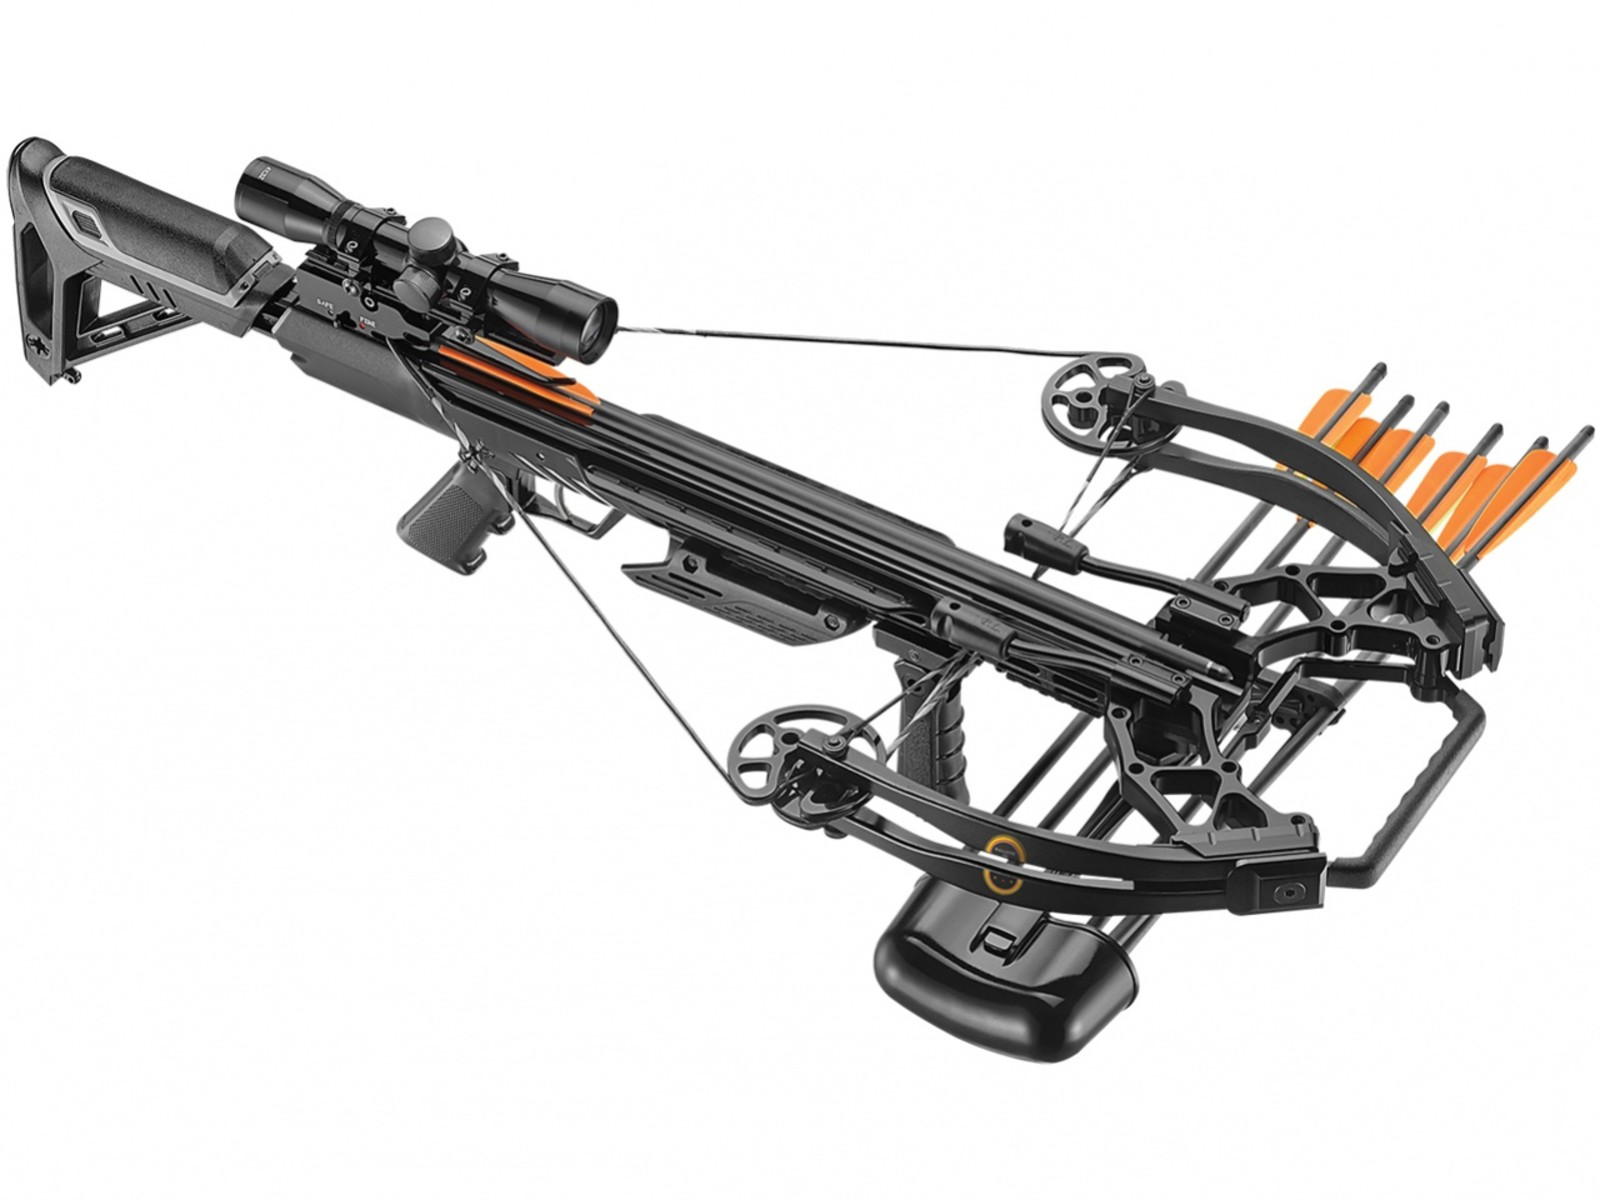 Kusza Beast Hunter Ballistic 410 200lb black